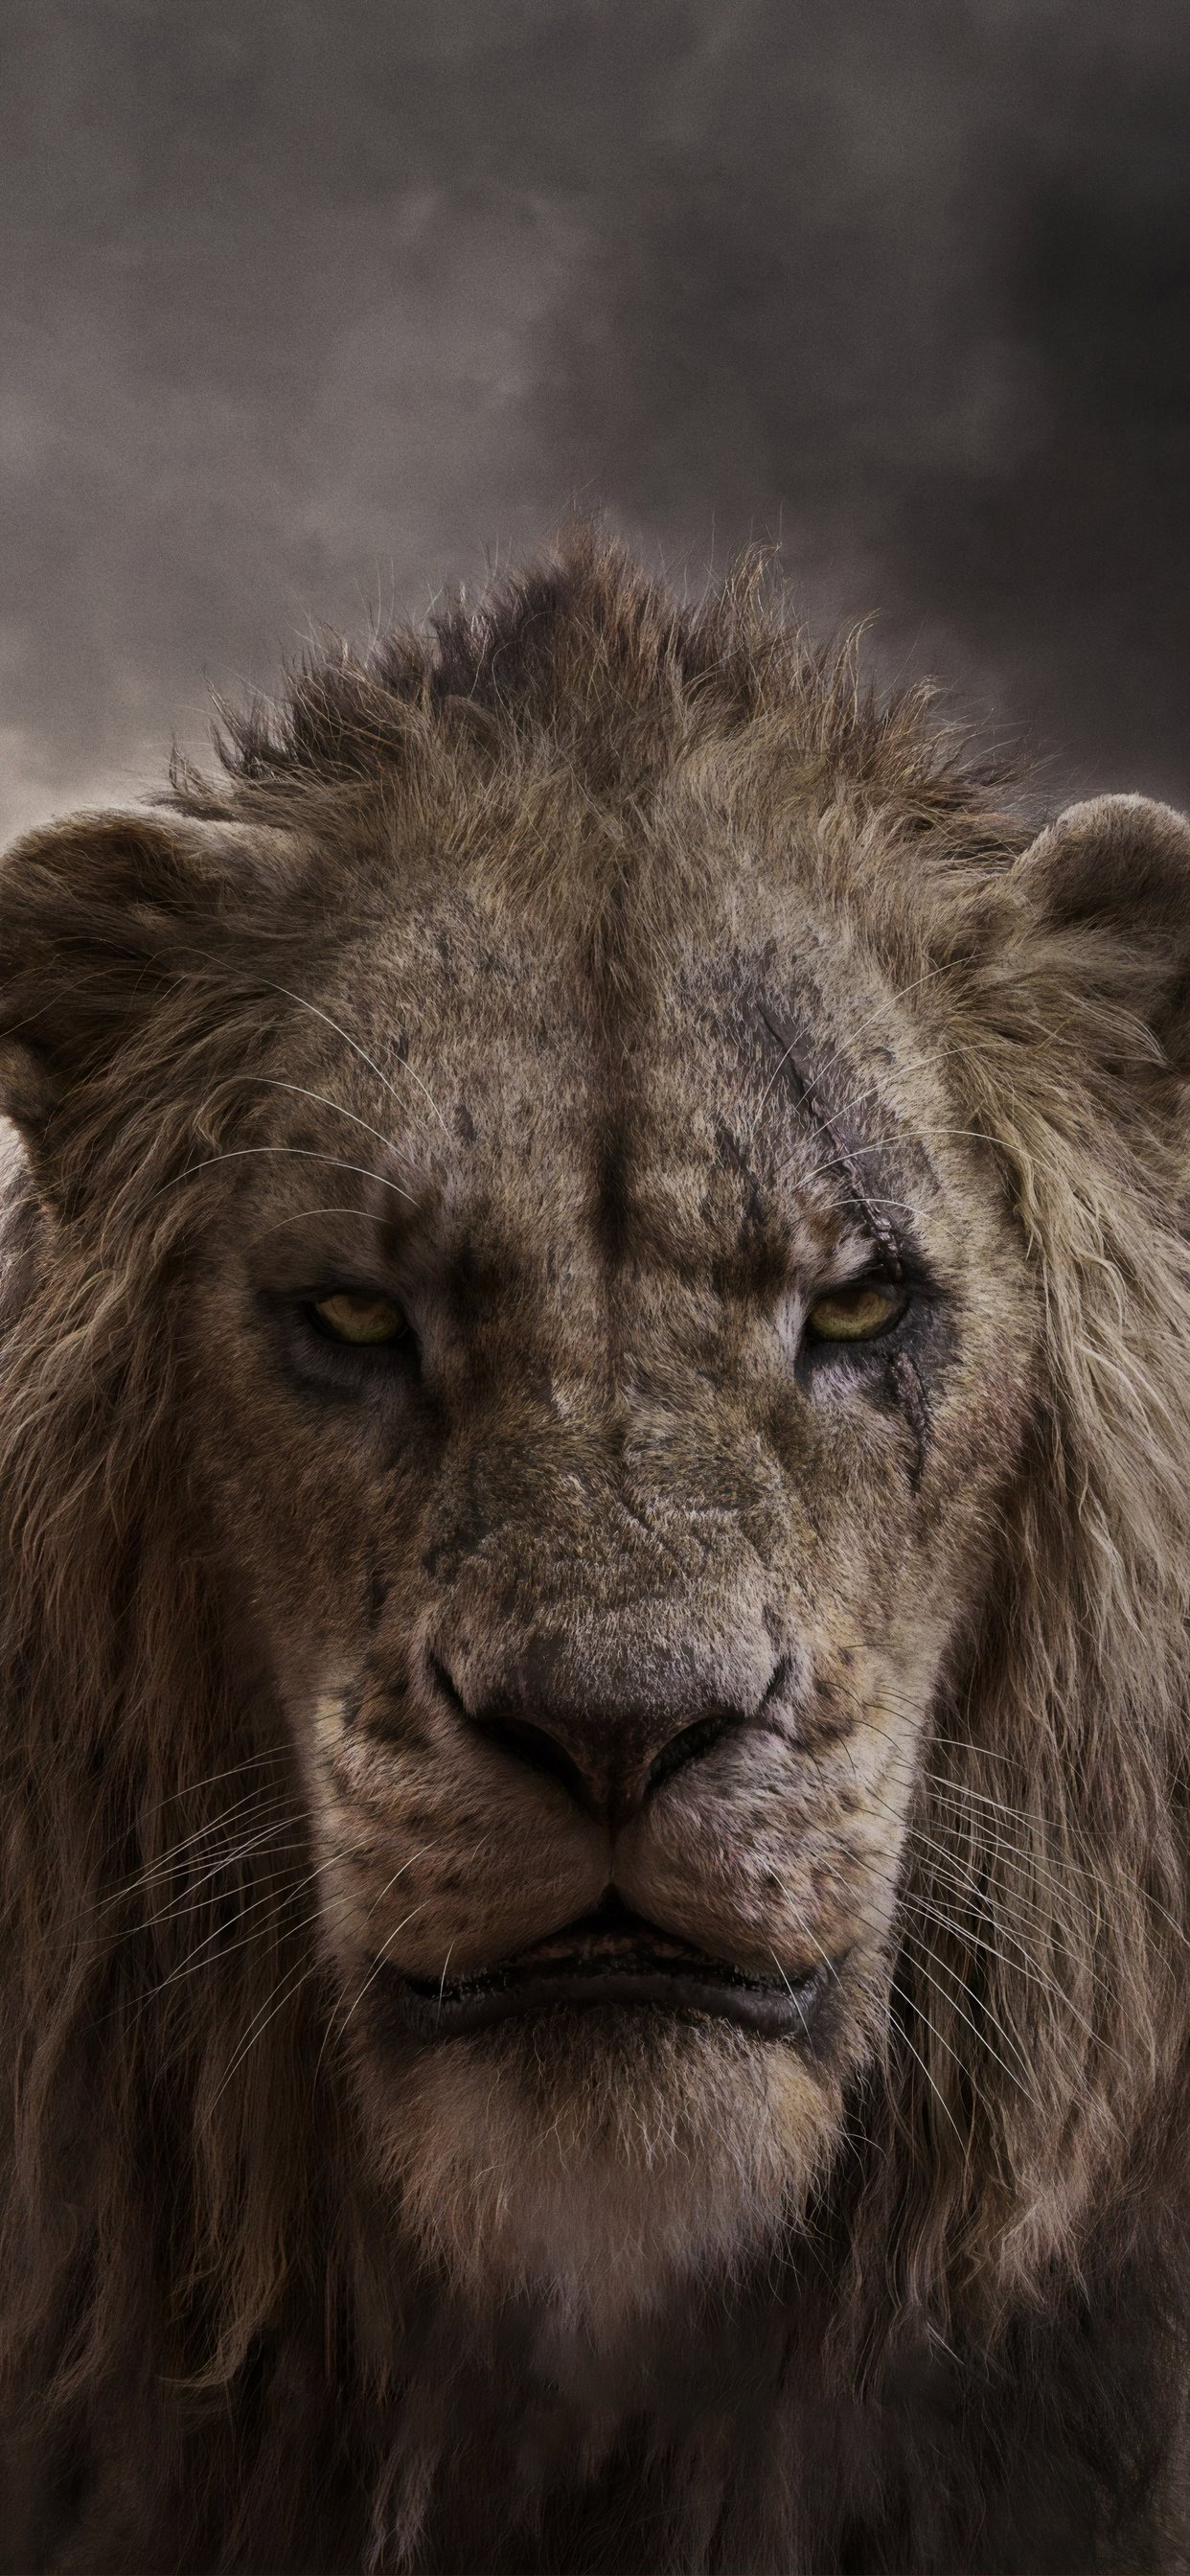 Chiwetel Ejiofor As Scar In The Lion King 2019 4k Iphone X Wallpapers Free Download